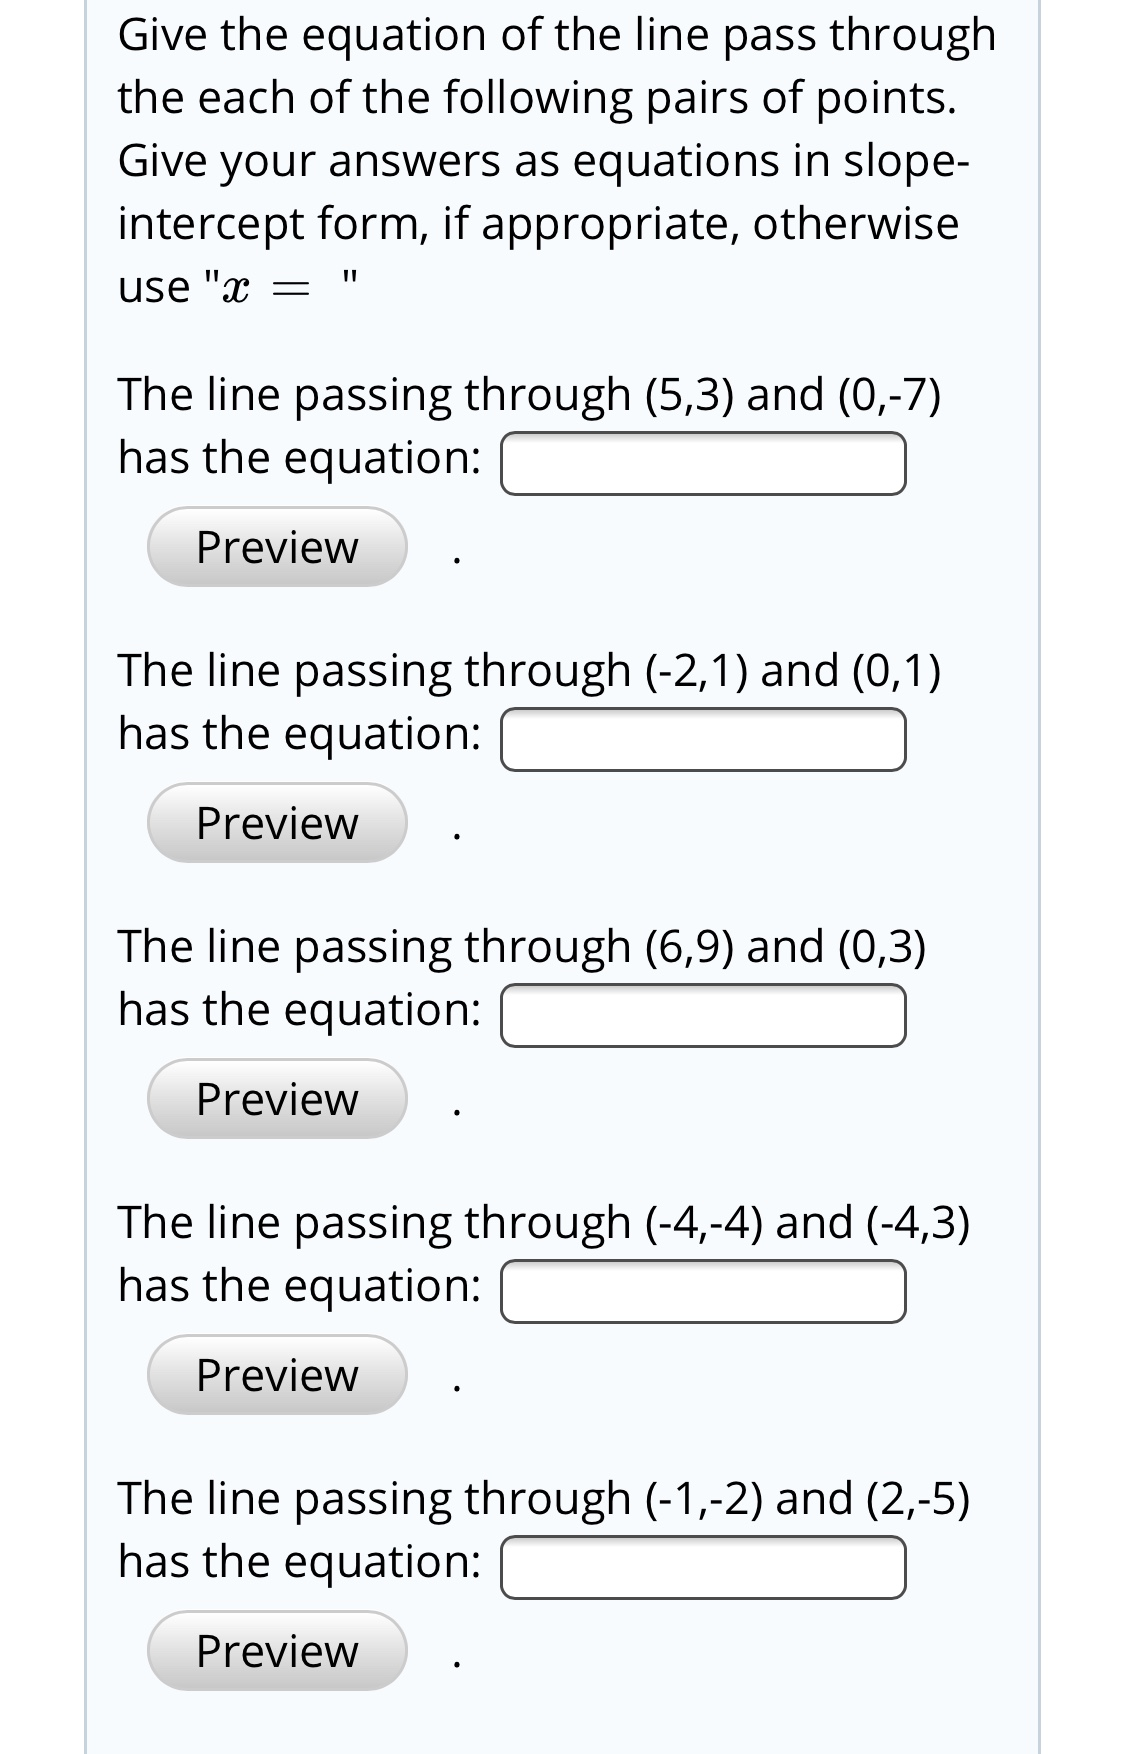 """Give the equation of the line pass through the each of the following pairs of points. Give your answers as equations in slope- intercept form, if appropriate, otherwise use """"x The line passing through (5,3) and (0,-7) has the equation: Preview The line passing through (-2,1) and (0,1) has the equation: Preview The line passing through (6,9) and (0,3) has the equation: Preview The line passing through (-4,-4) and (-4,3) has the equation: Preview The line passing through (-1,-2) and (2,-5) has the equation: Preview"""